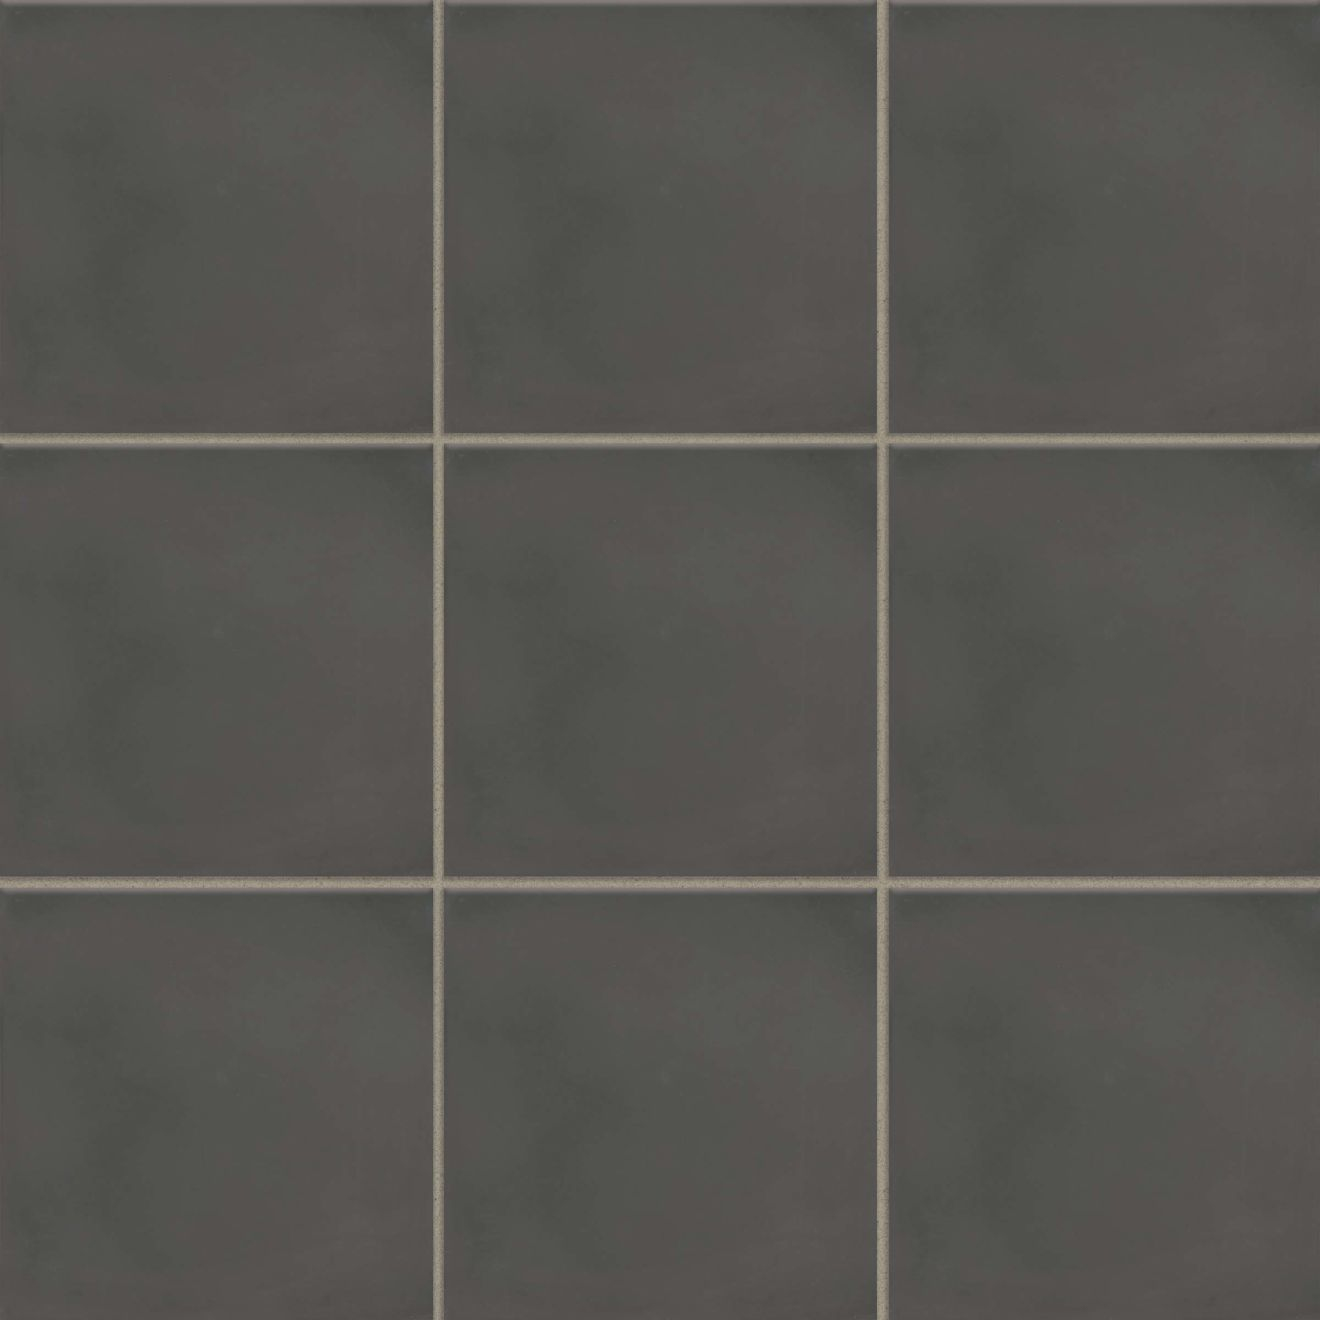 Remy 8 X 8 X 58 Floor And Wall Tile In Charcoal